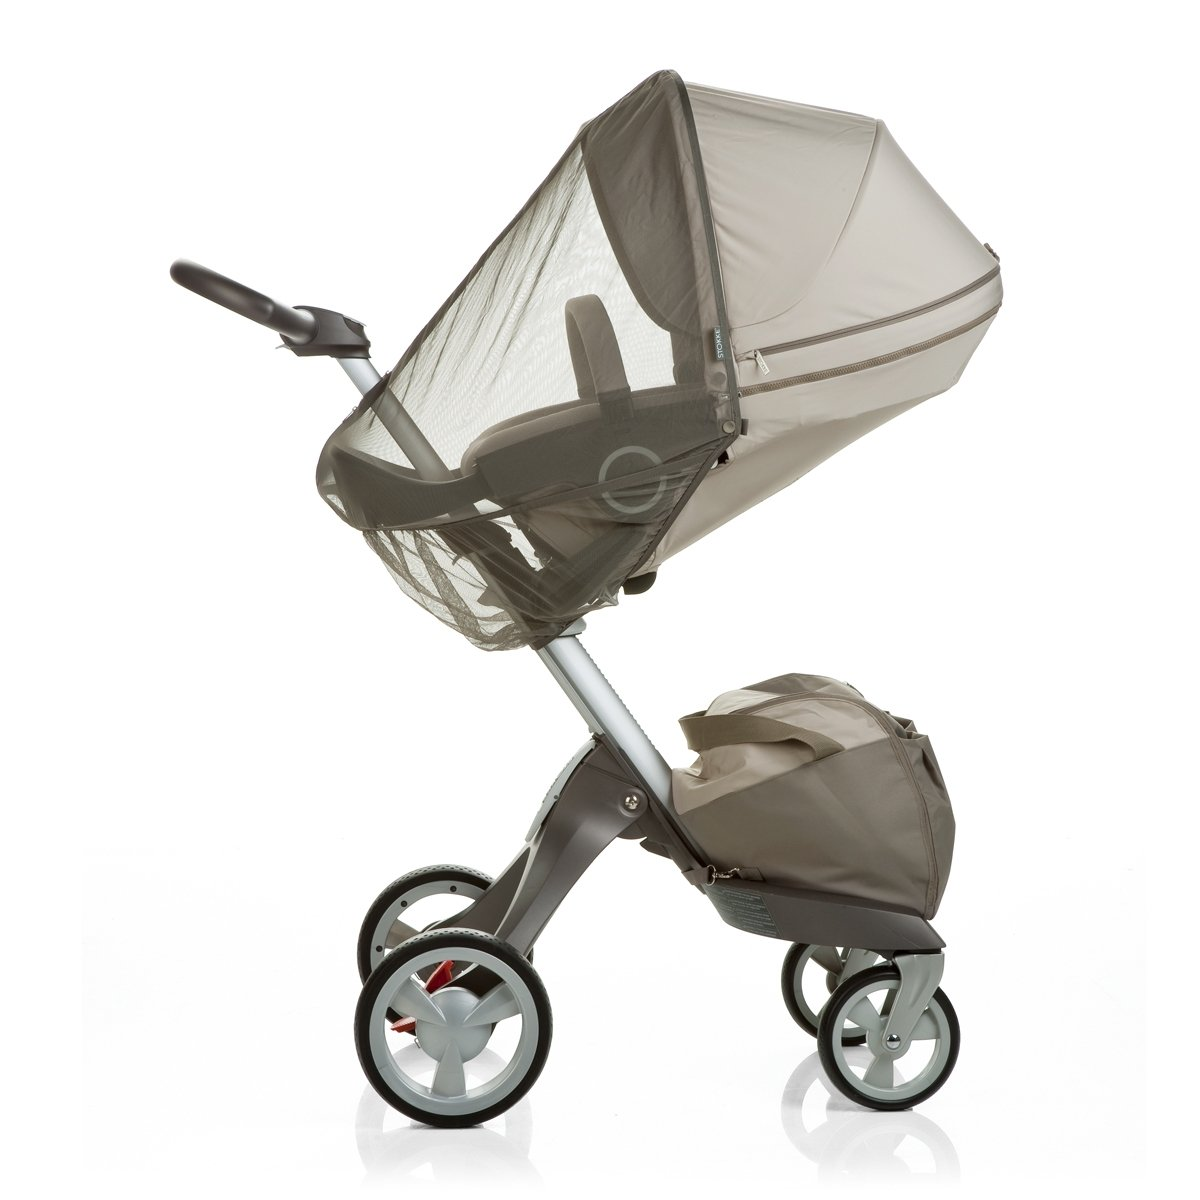 Stokke Stroller Xplory/Crusi Seat Mosquito Net 179700